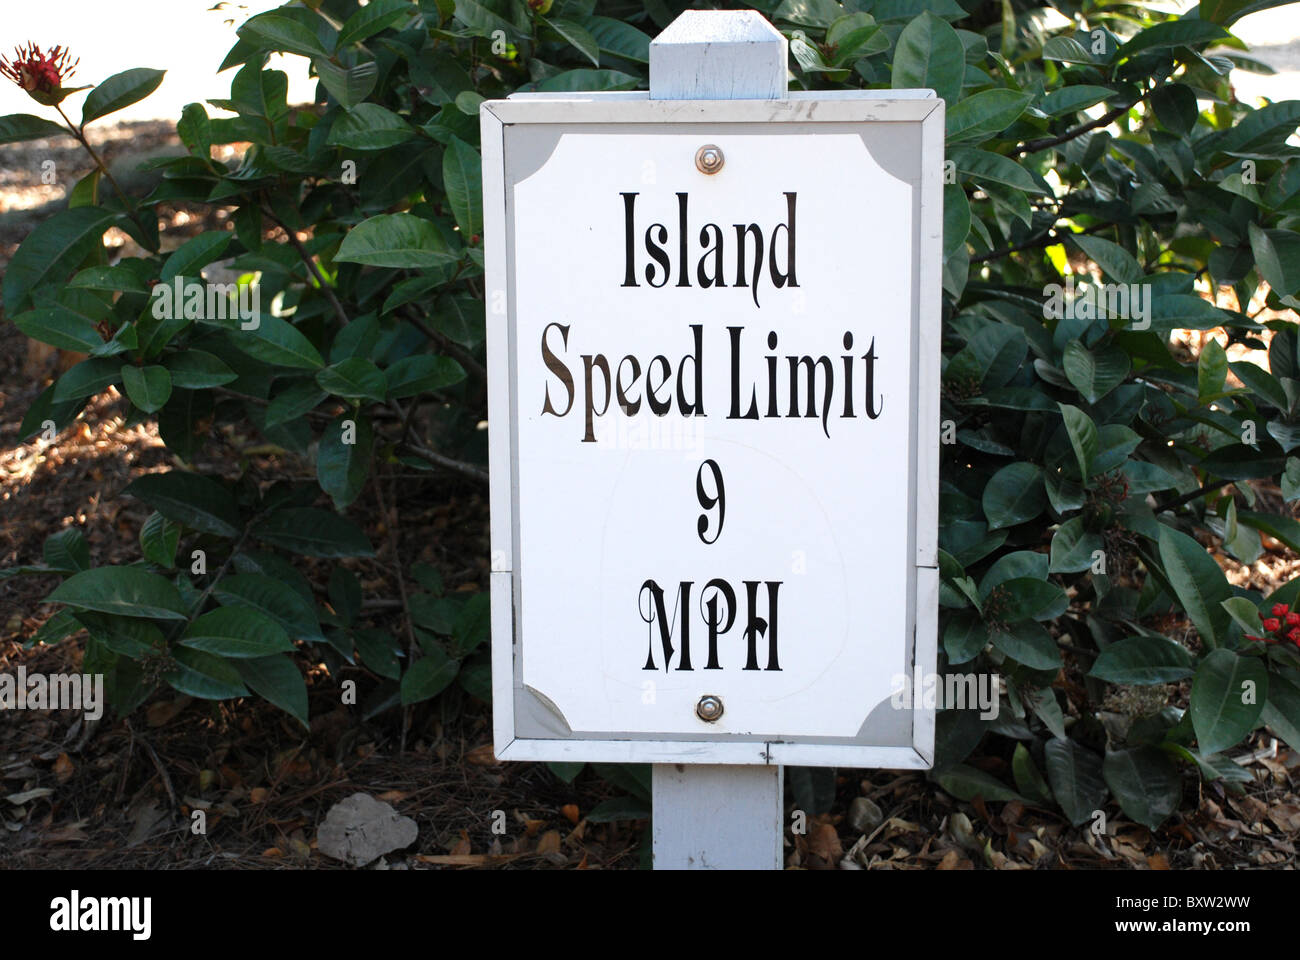 Speed limit sign on Useppa Island, a private island in SW Florida accessible only by boat. - Stock Image